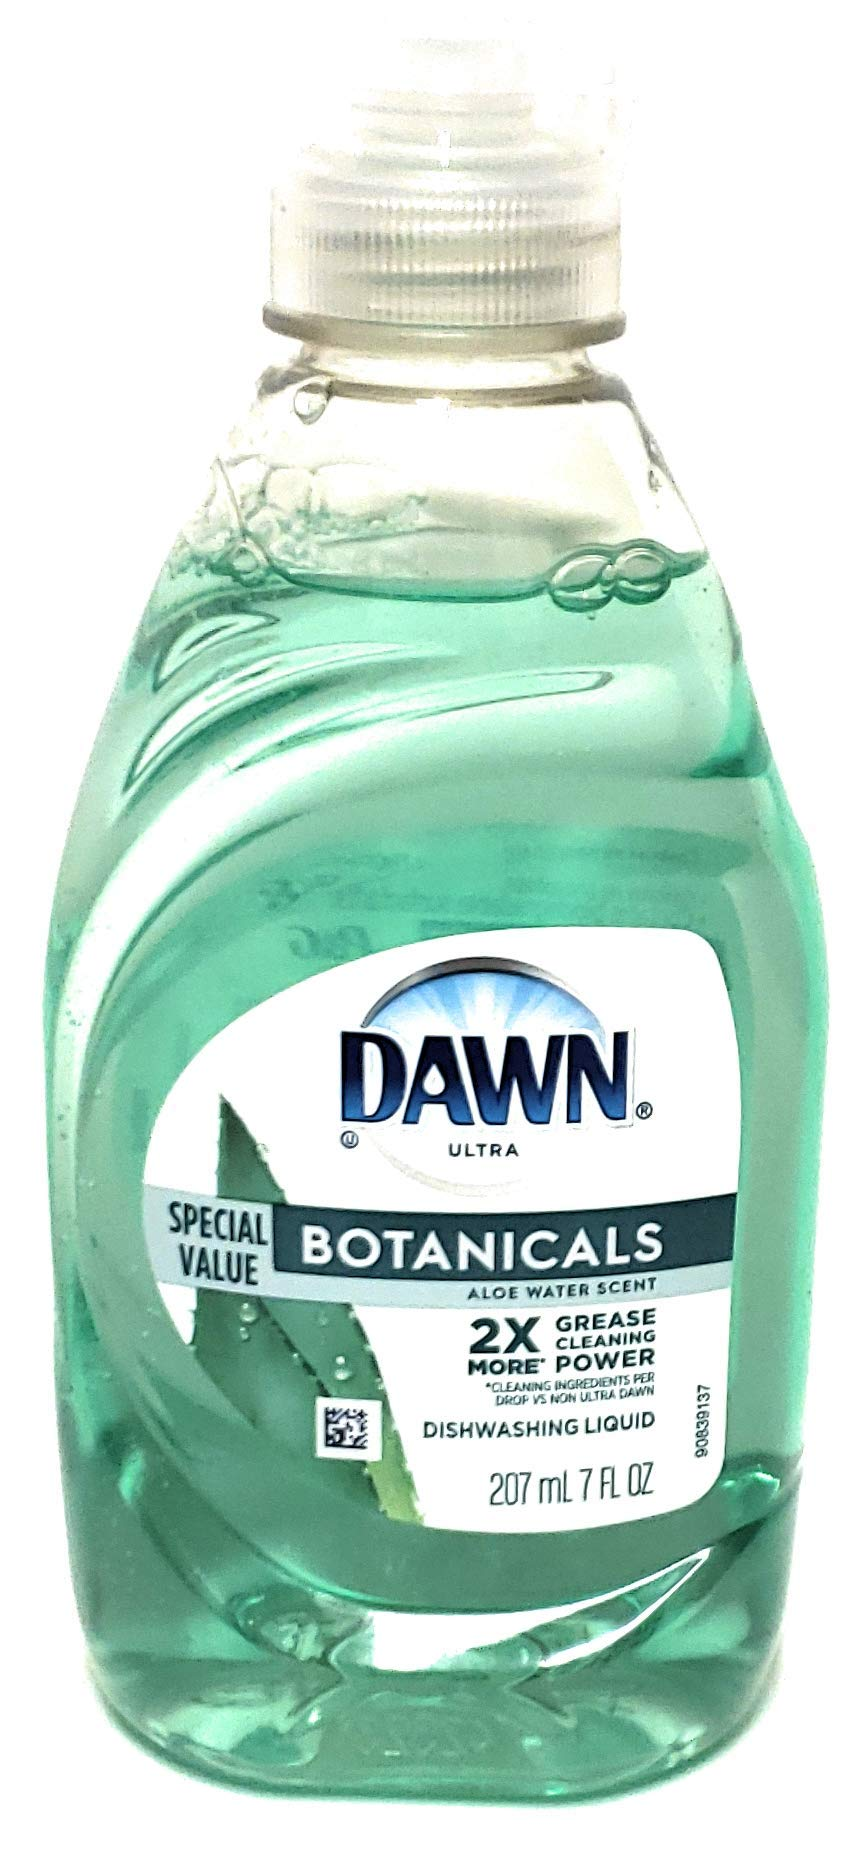 Dawn Ultra Botanicals – Aloe Water Scent 270 ml / 7 fl oz – 2X More Grease Cleaning Power – Phosphate Free